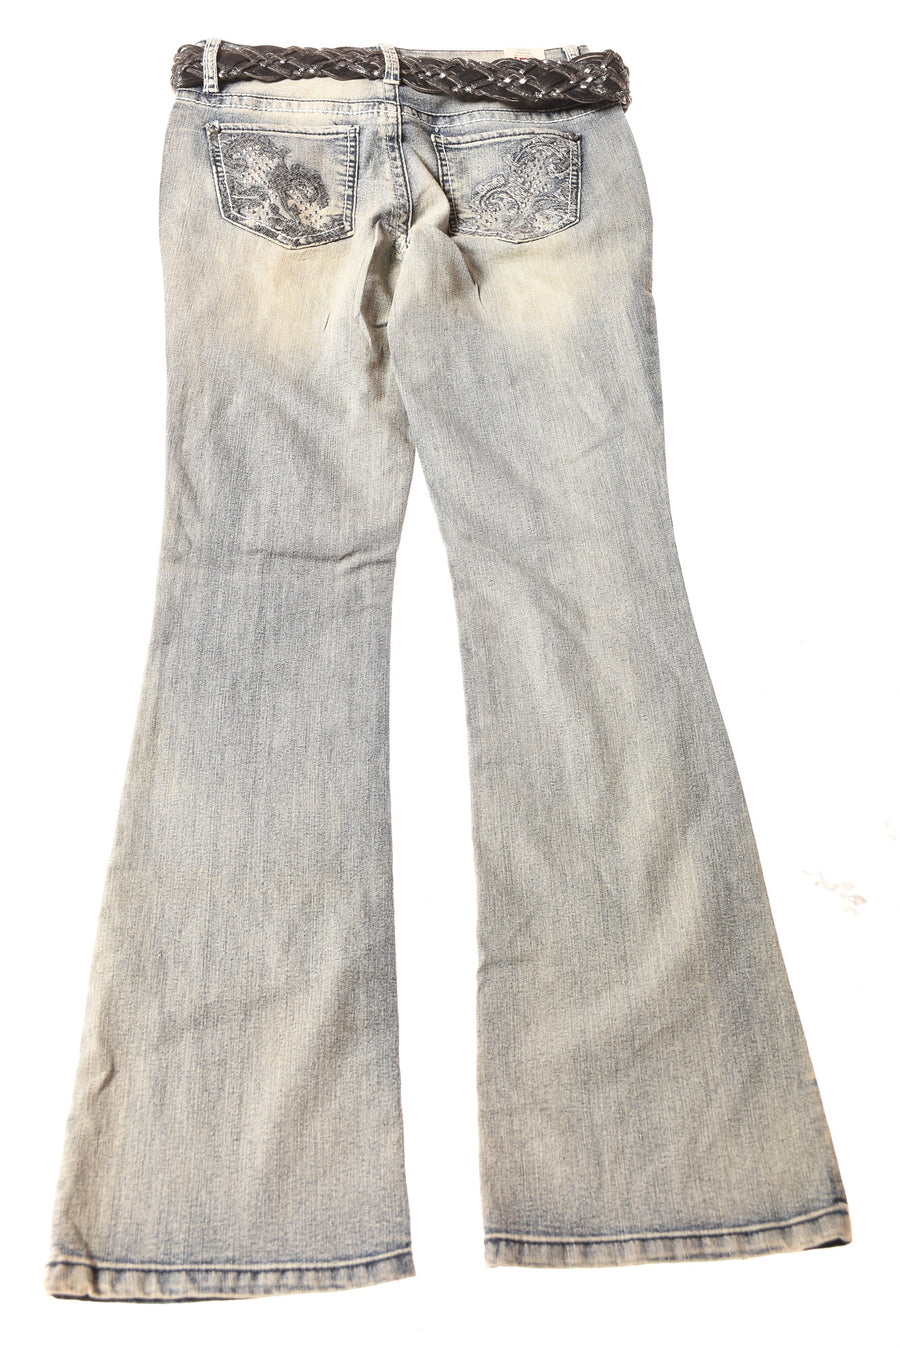 NEW L.E.I Women's Jeans 1 Blue